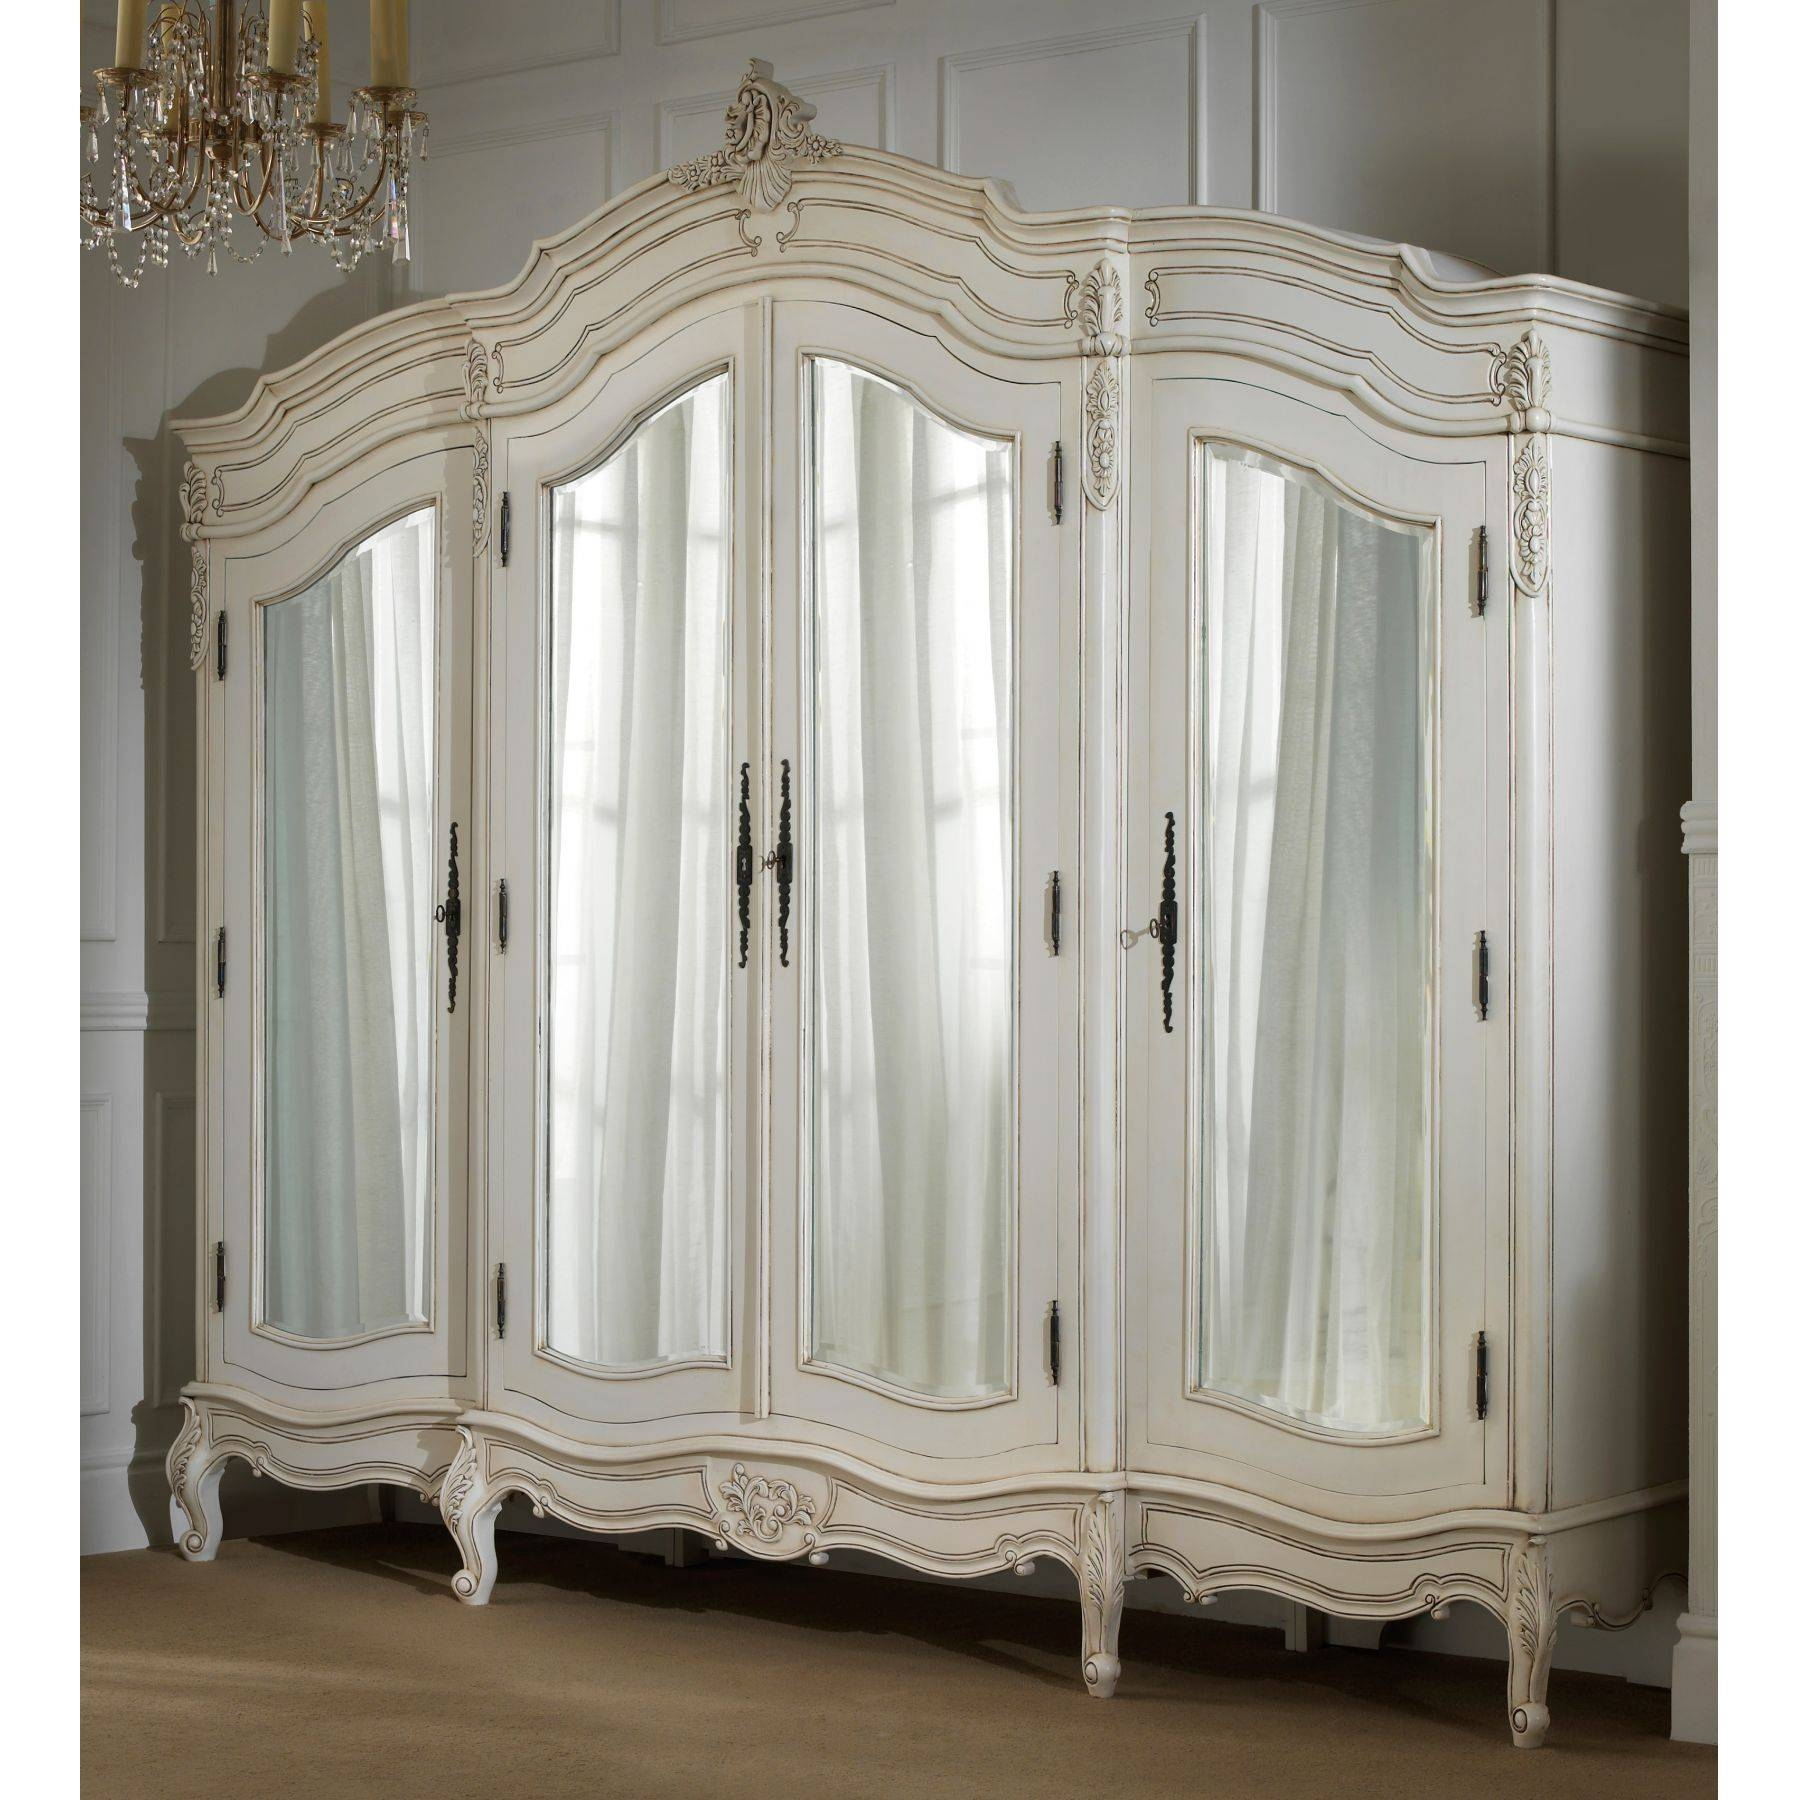 Bedroom : Antique Bedroom French Bedroom Furniture Vintage Style inside White Vintage Wardrobes (Image 2 of 15)